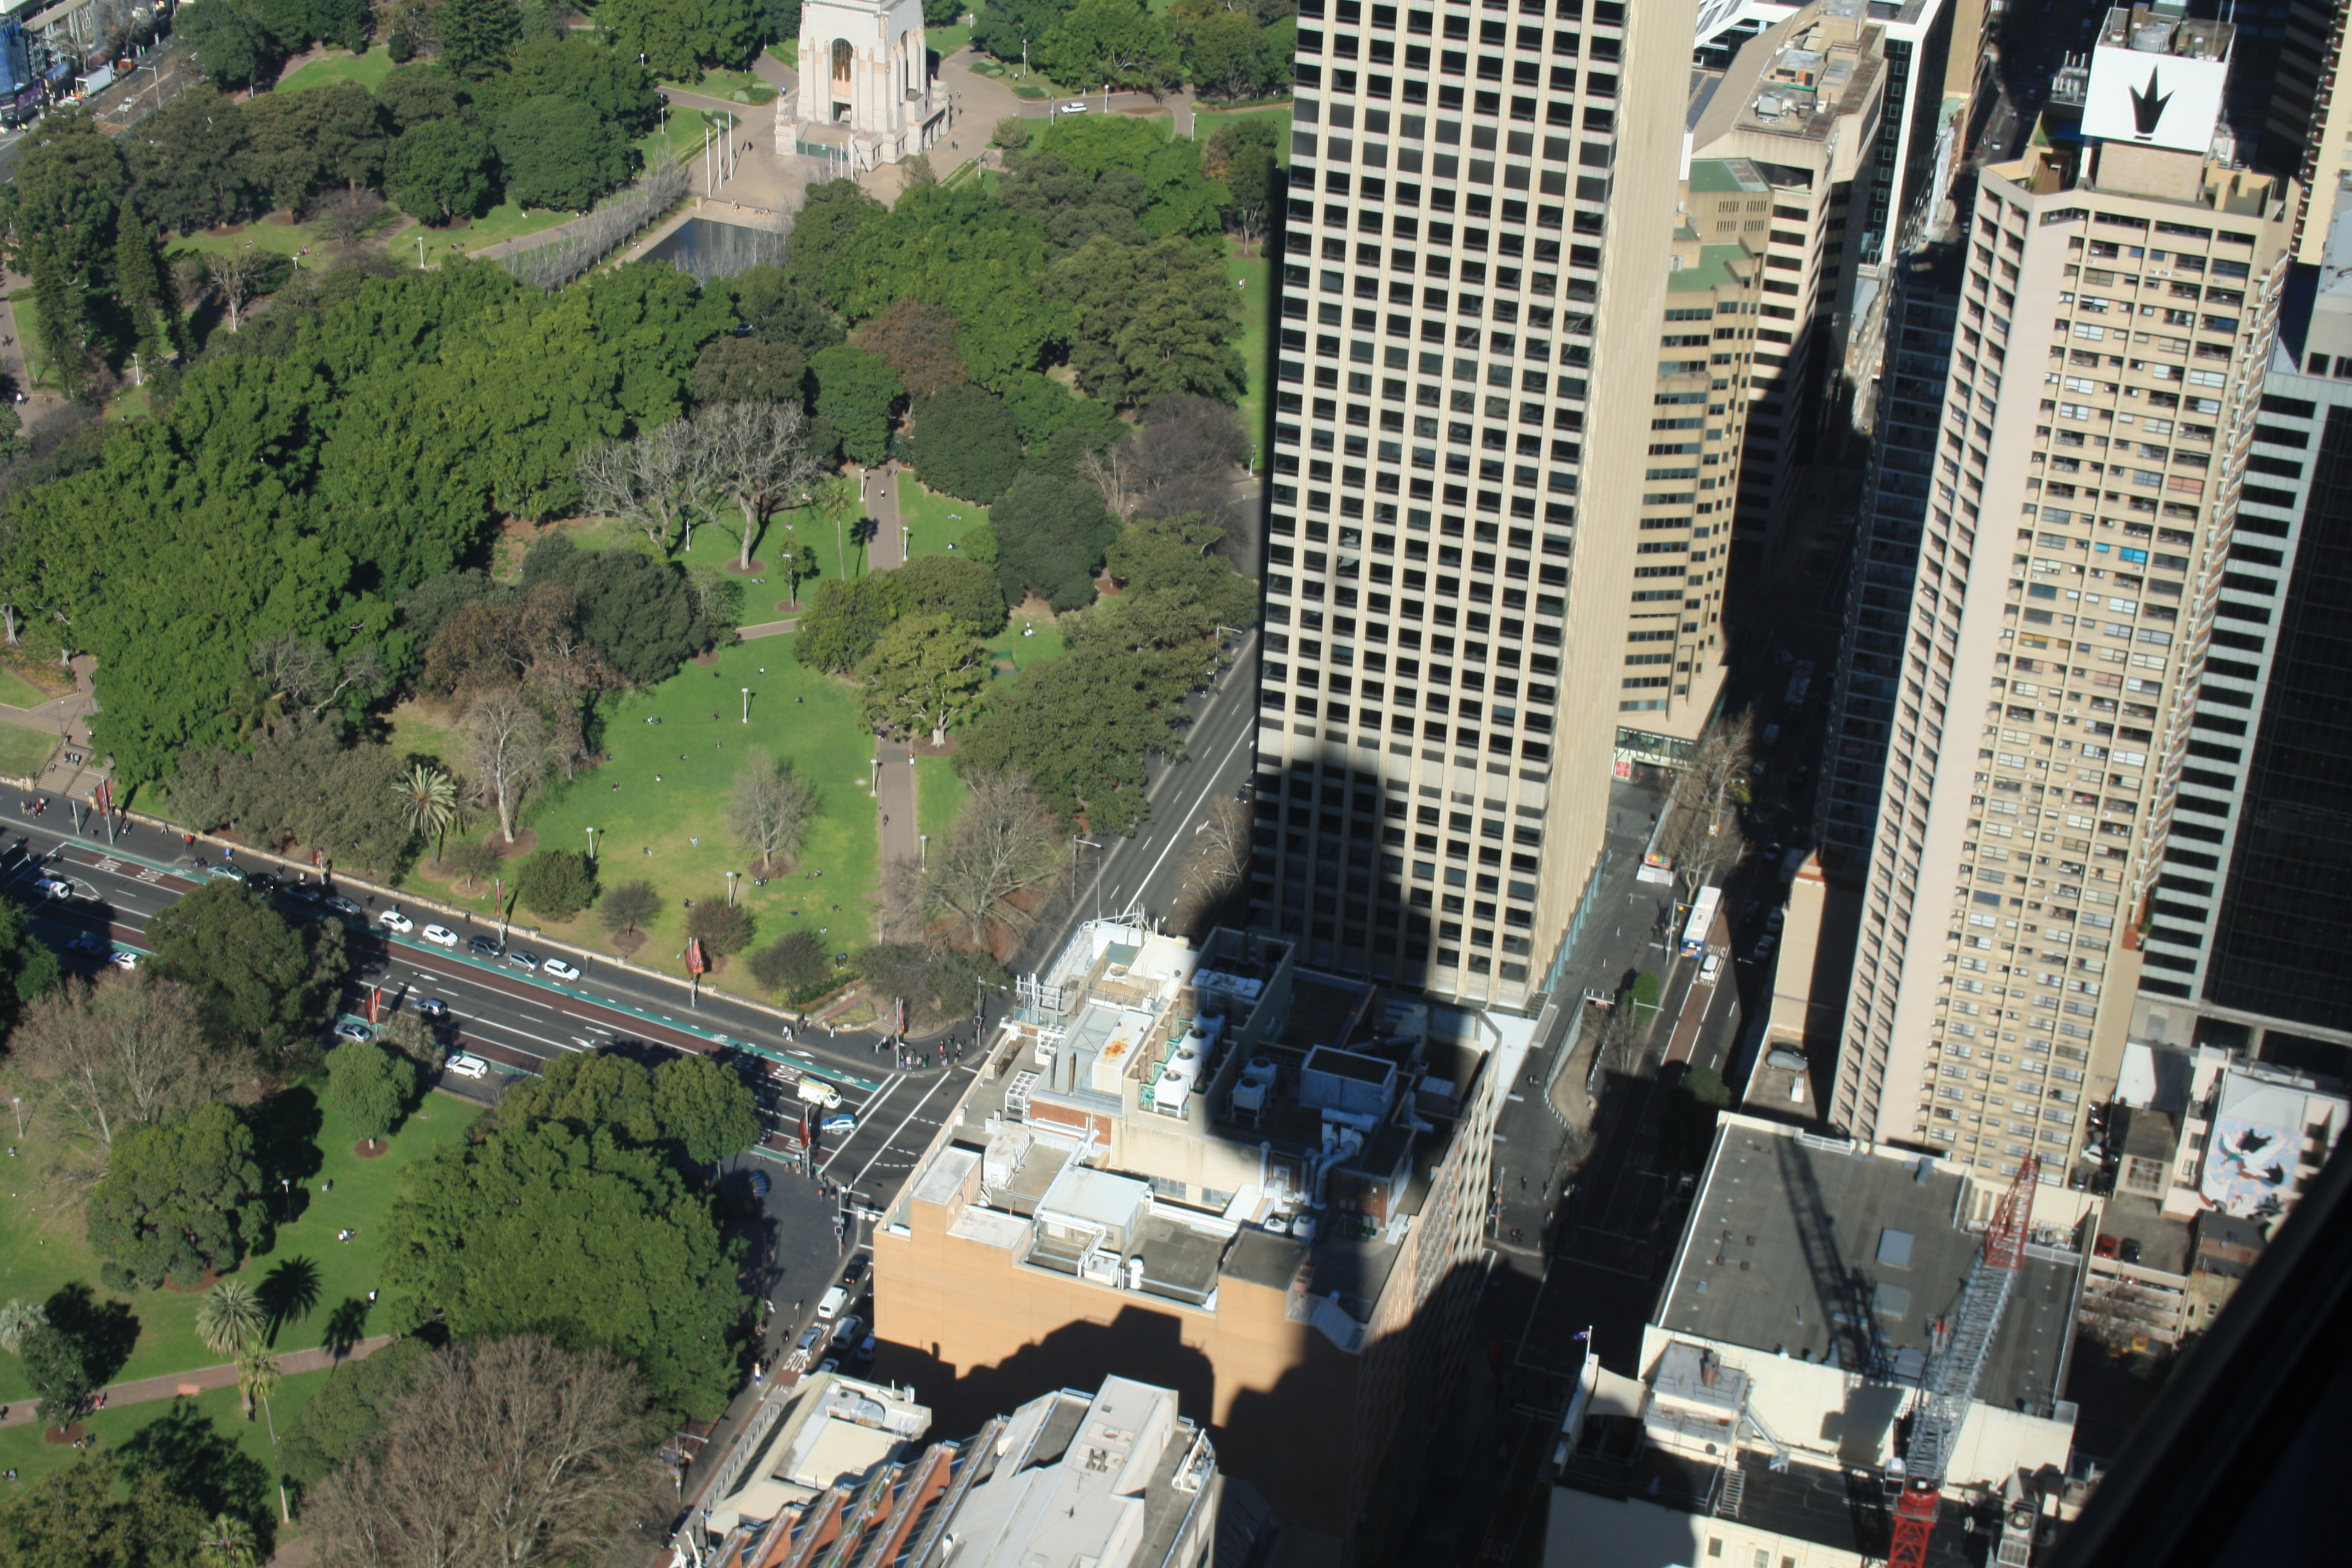 From Sydney Tower